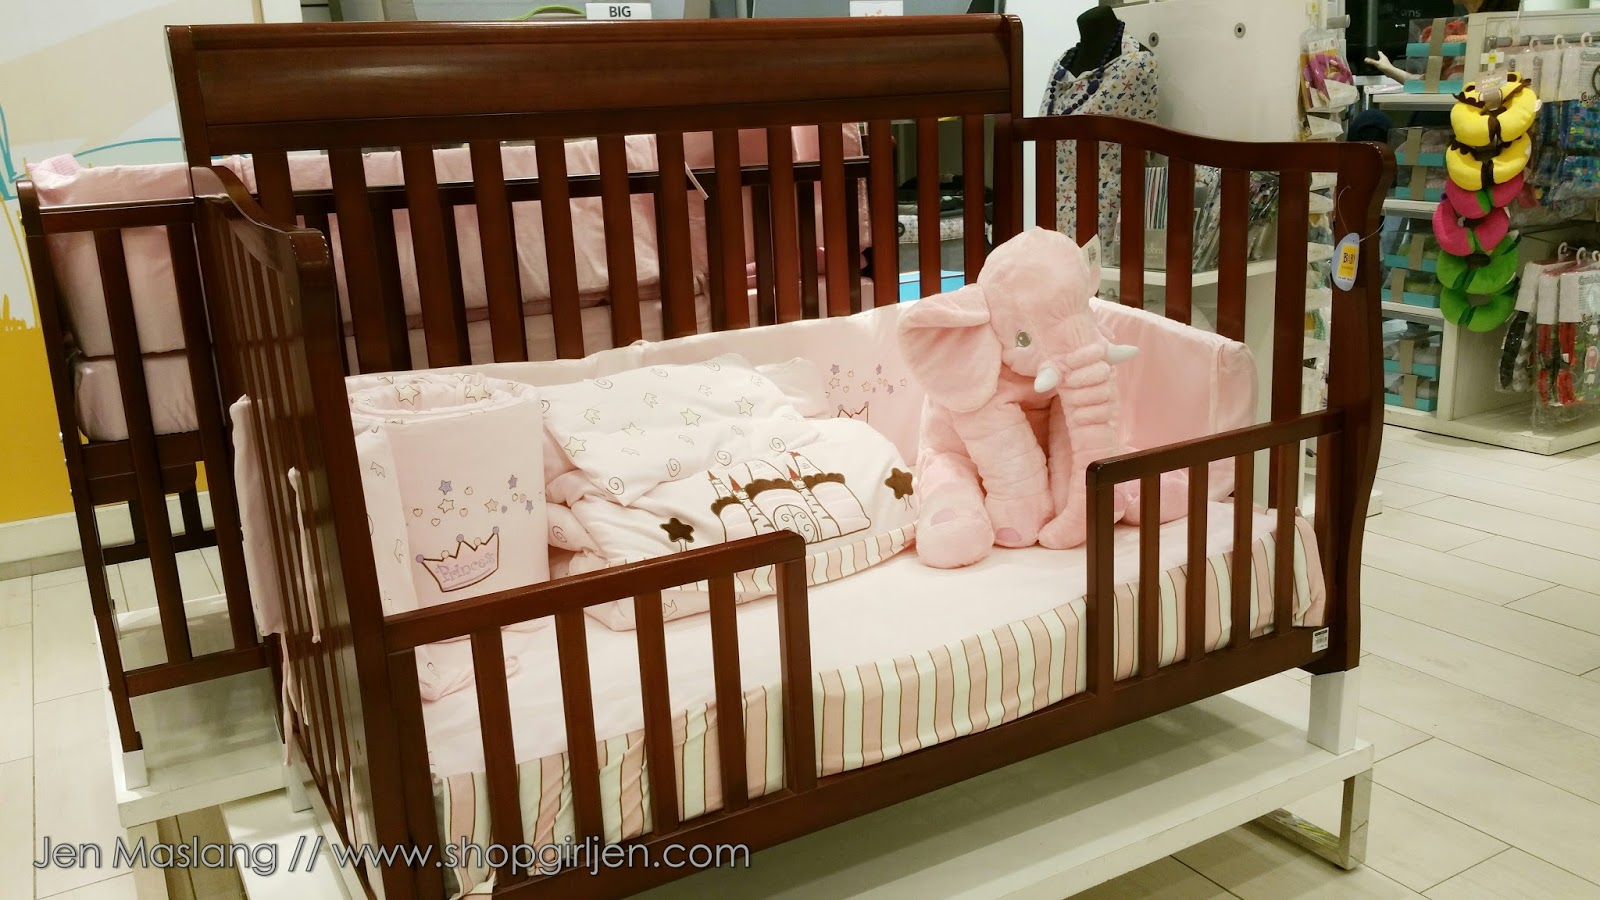 baby furniture images. Baby Company Sure Has A Lot Of Furniture To Choose From. But For My Top 4 Picks, I Narrowed It Down Using These Criteria. Images